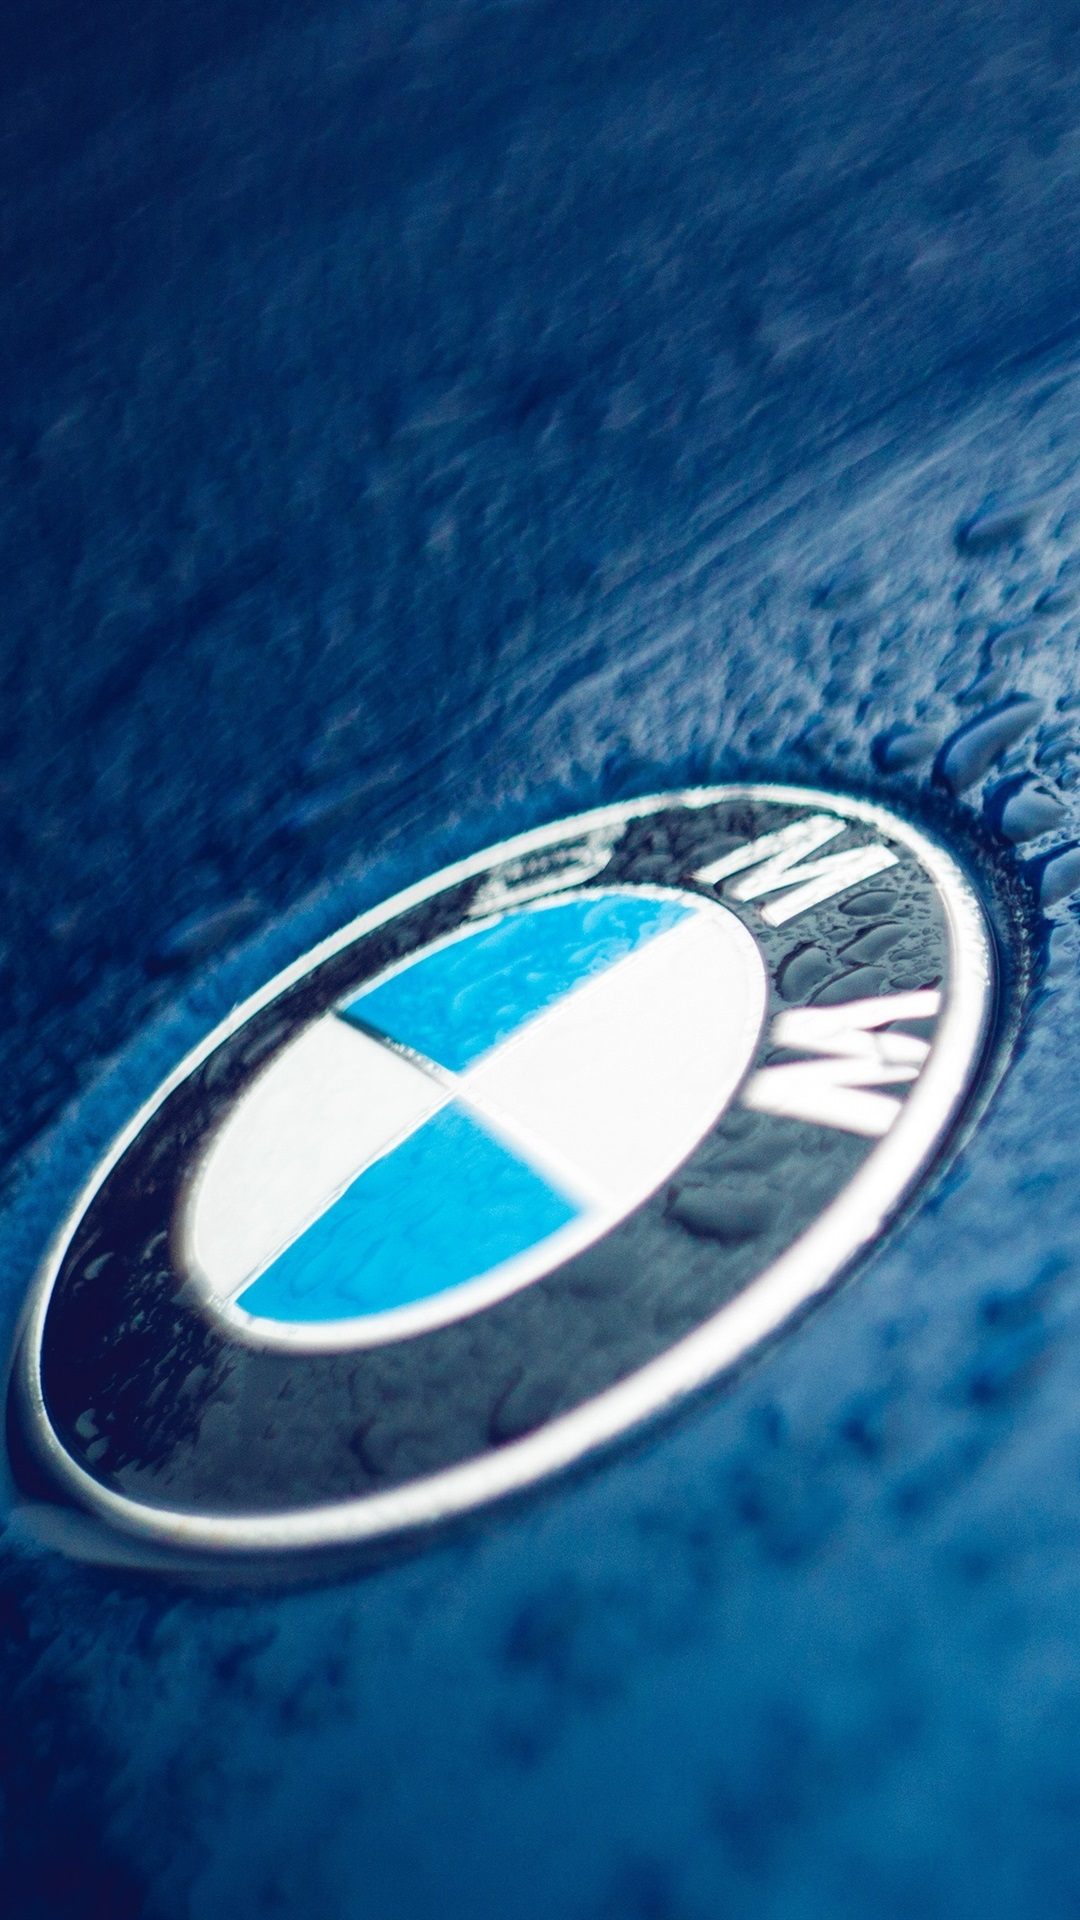 Bmw Logo Water Droplets 1080x1920 Iphone 8 7 6 6s Plus Wallpaper